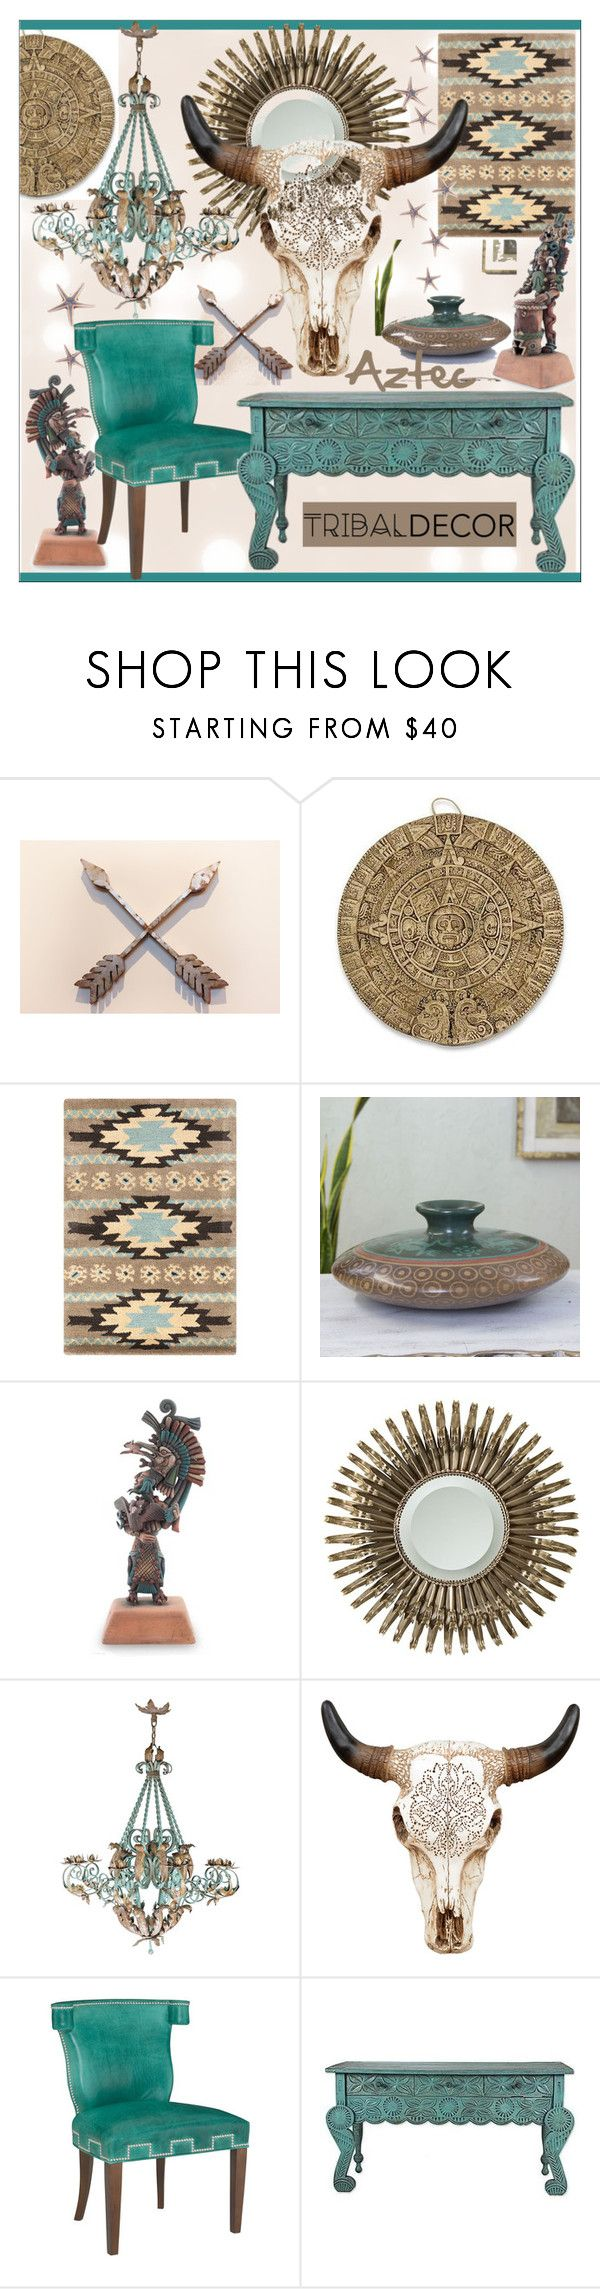 """Tribal Decor * Turquoise Living Room"" by calamity-jane-always ❤ liked on Polyvore featuring interior, interiors, interior design, home, home decor, interior decorating, NOVICA, Universal Lighting and Decor, living room and tribaldecor"